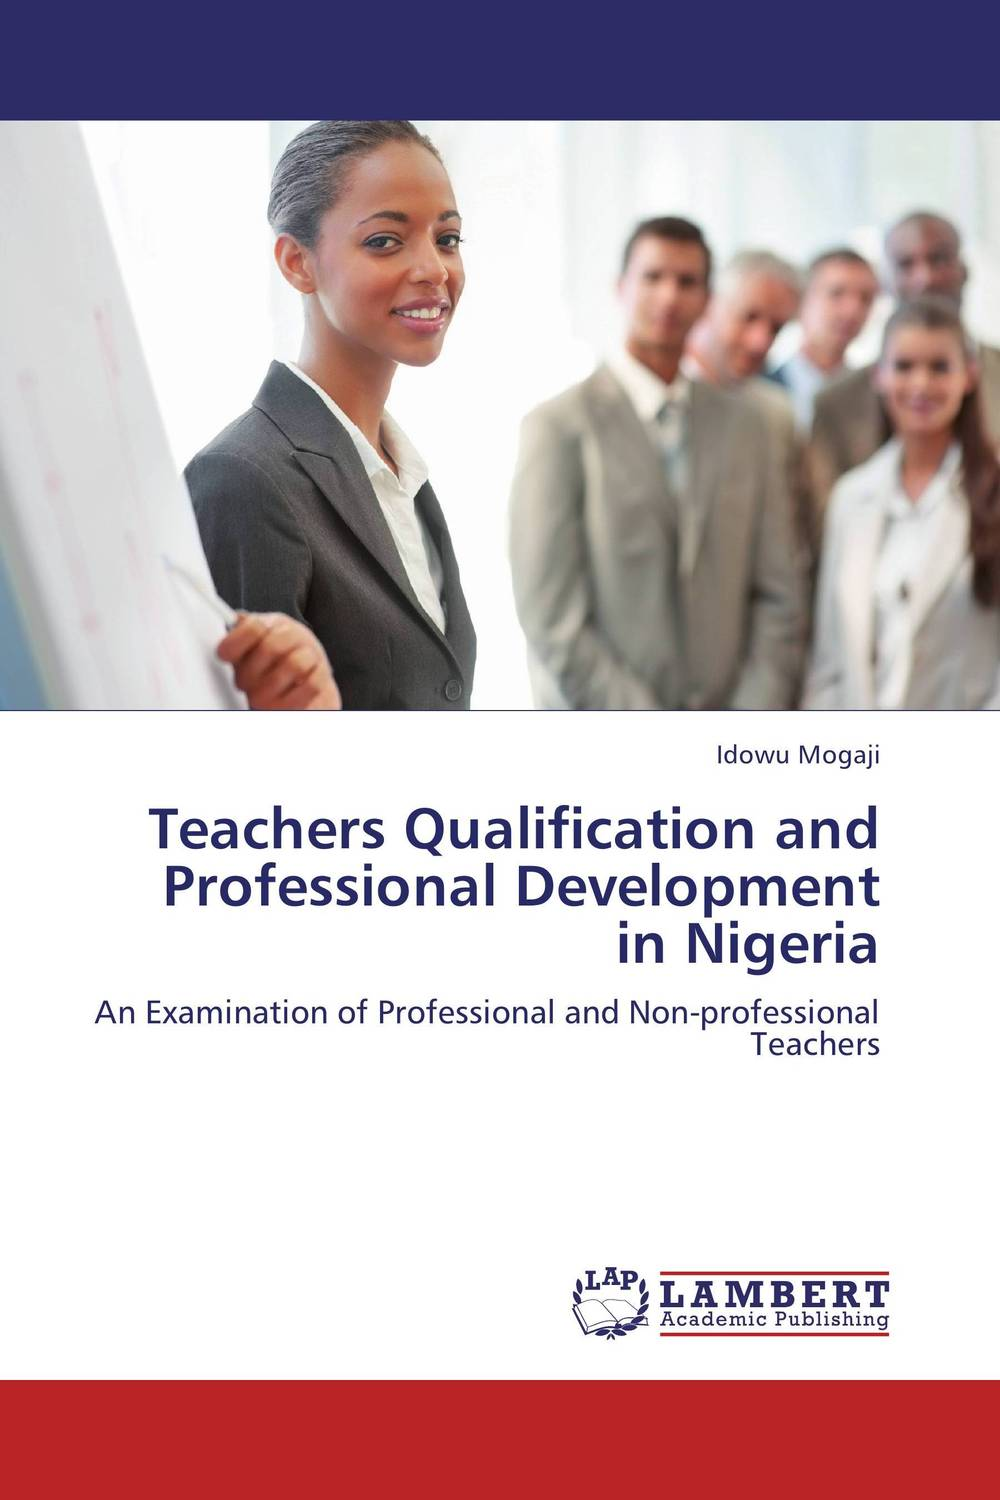 Teachers Qualification and Professional Development in Nigeria system of education in nigeria